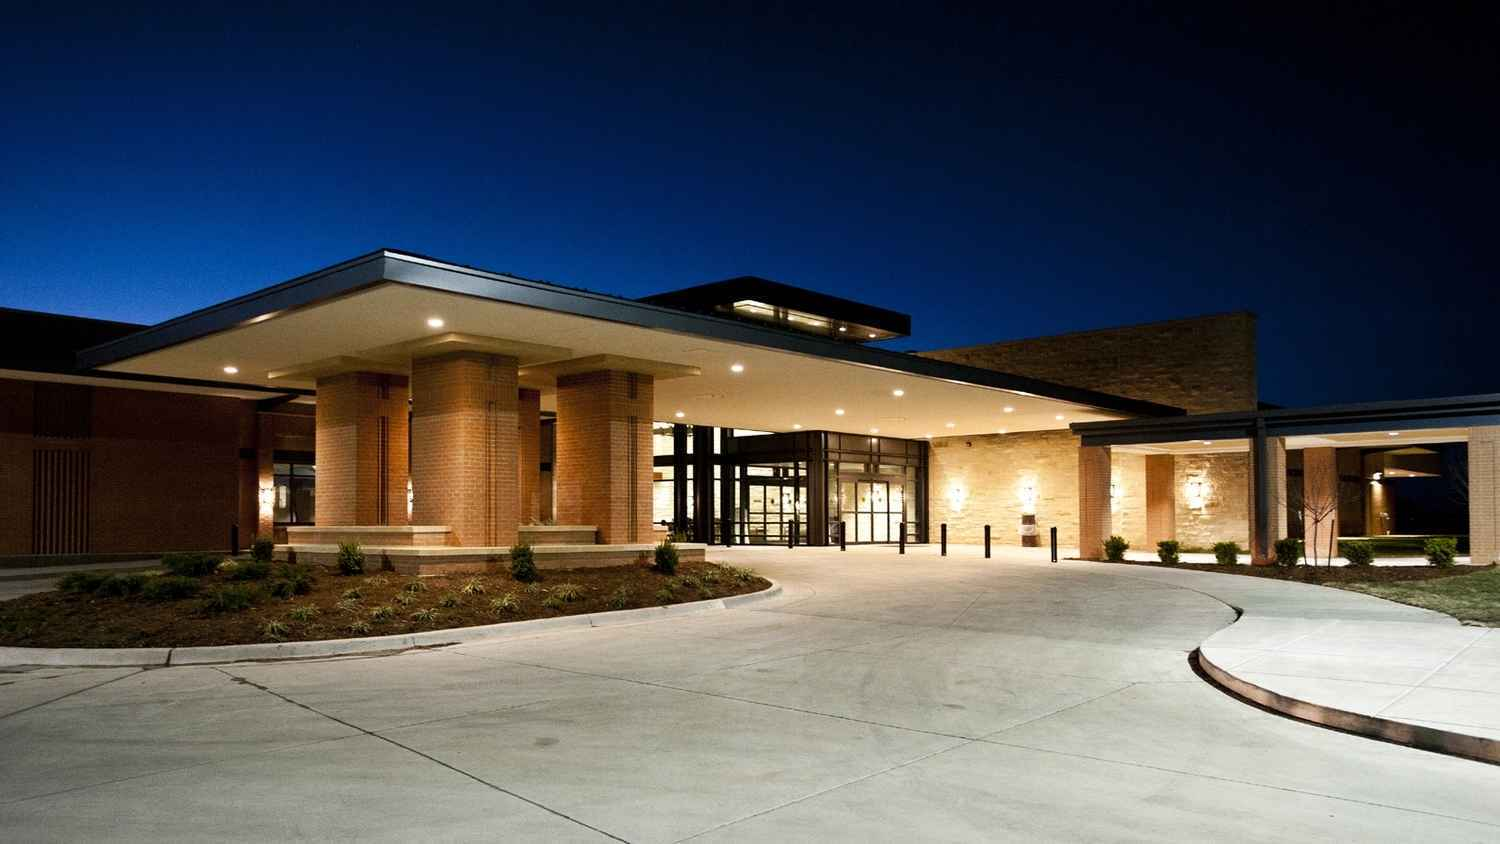 Give now to help recruit new physicians to South Central Kansas Medical Center! image